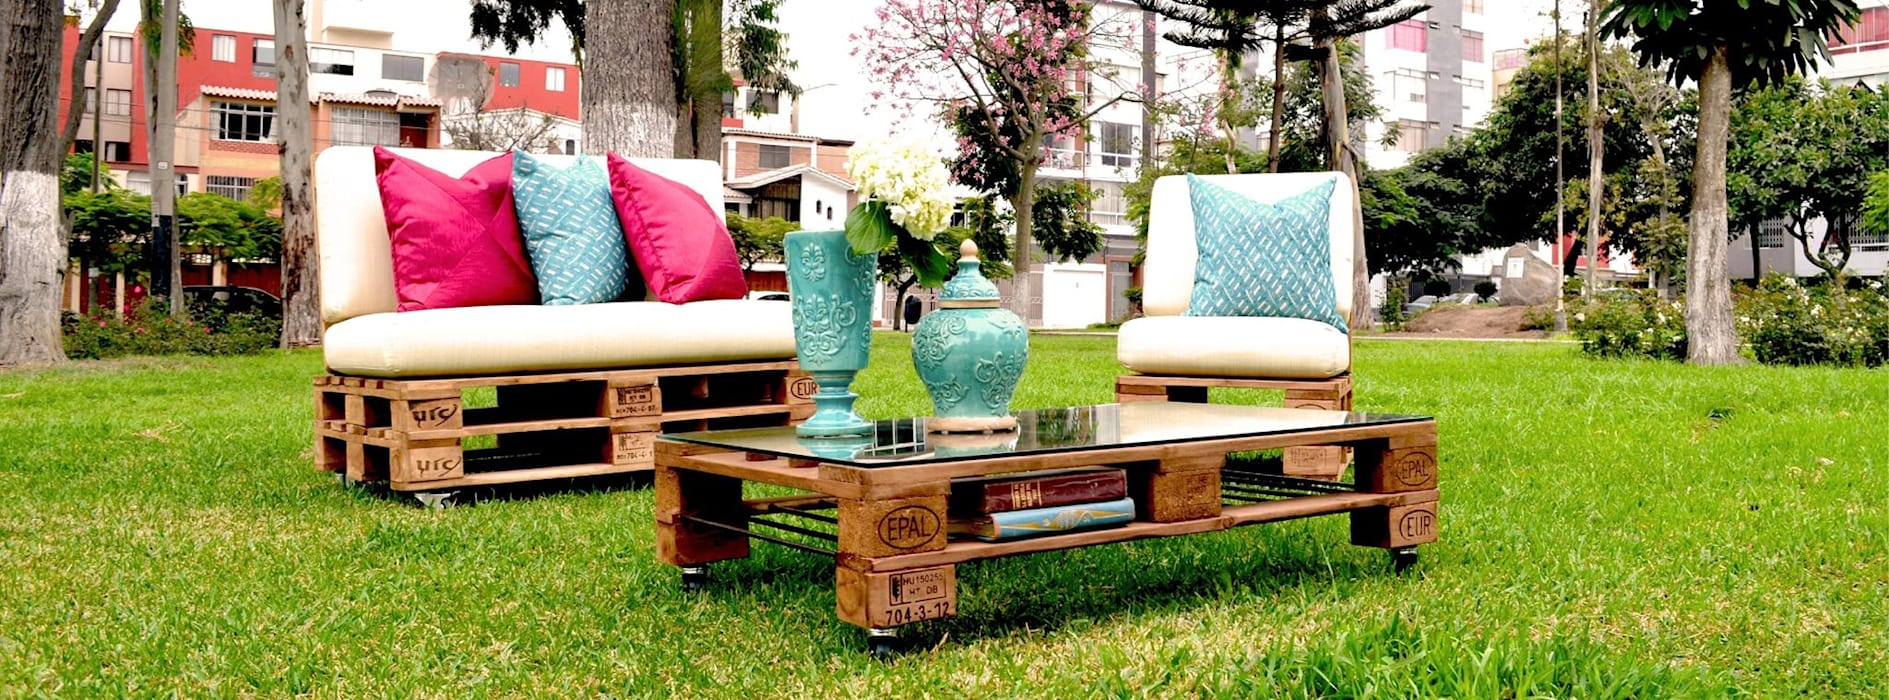 Creative Ideas For Garden Decorations